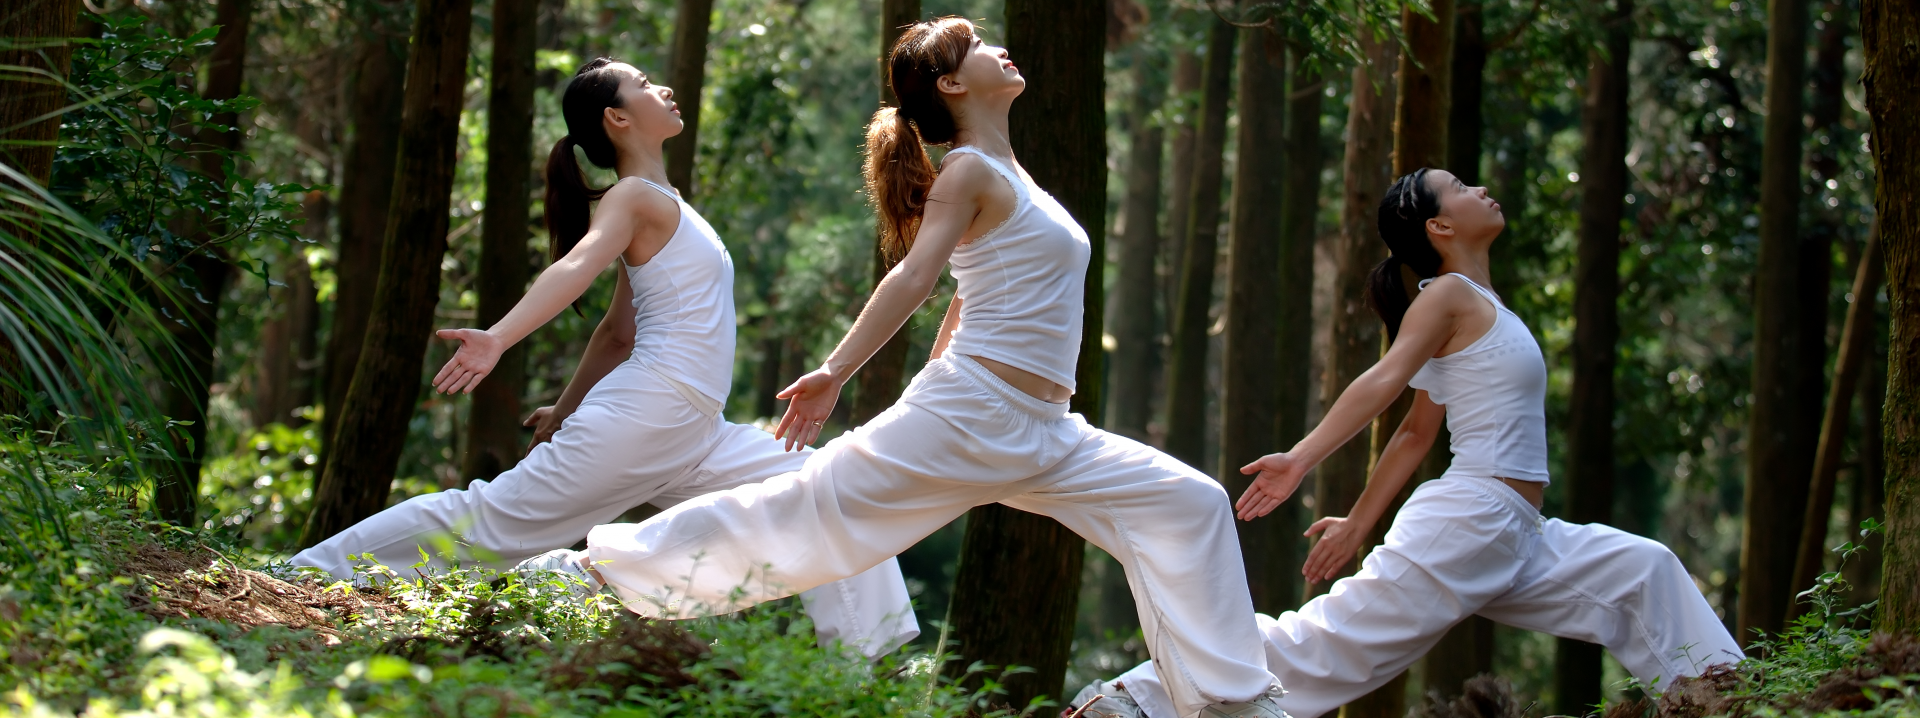 Thee Asian women in a forest doing dressed in white doing yoga